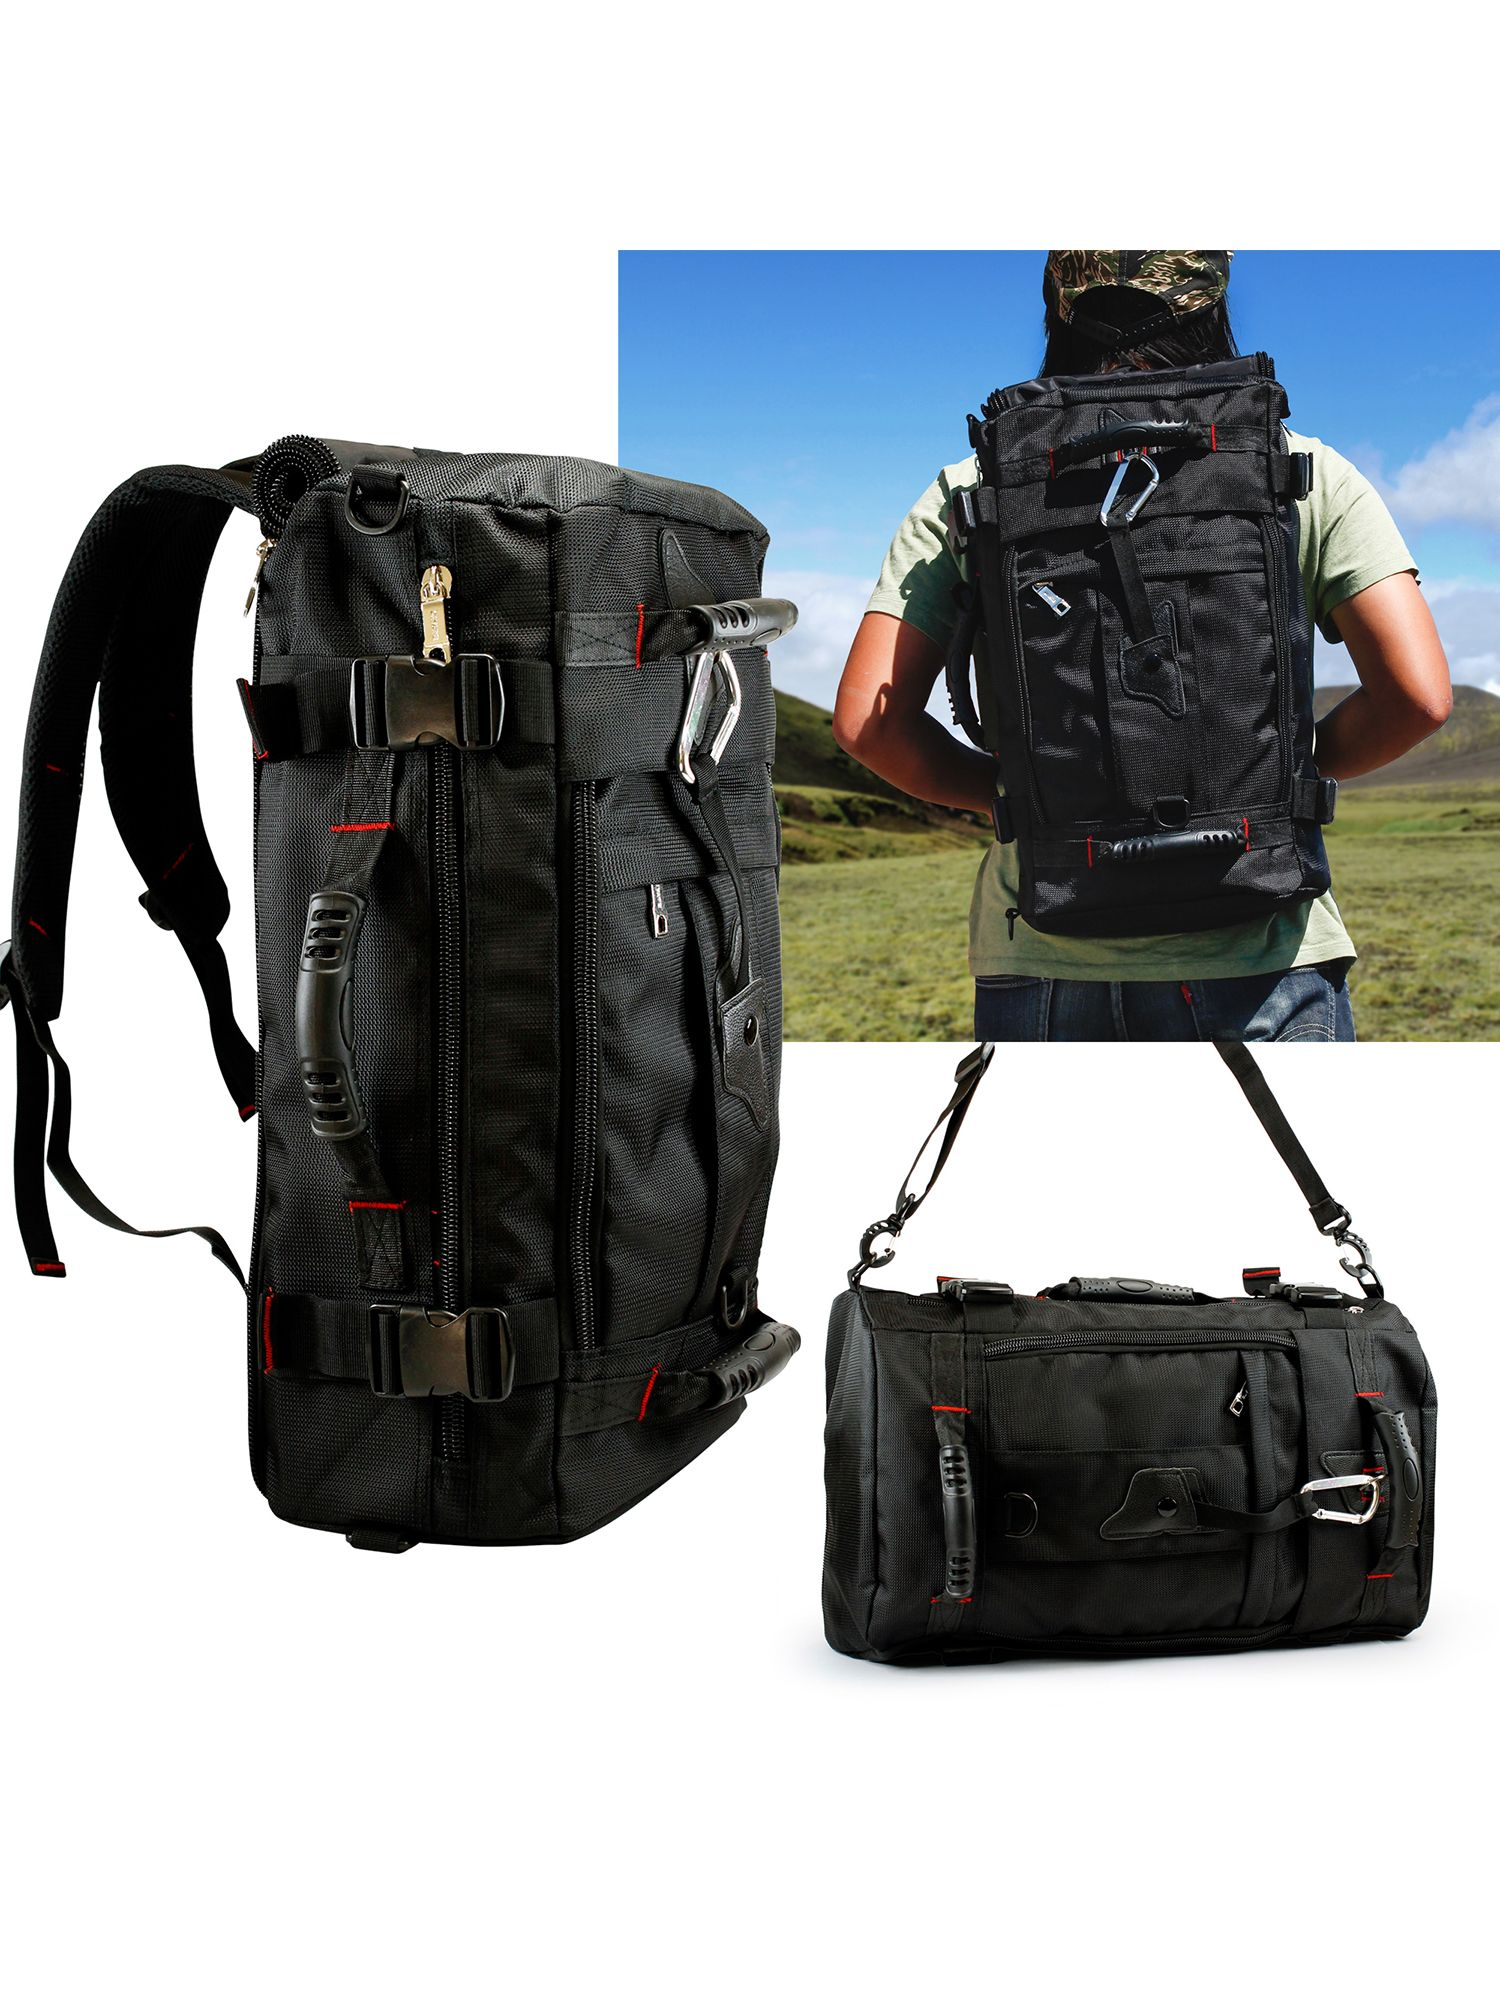 New Mens Black Multi-Function Backpack Large Capacity Camping Travel Backpack